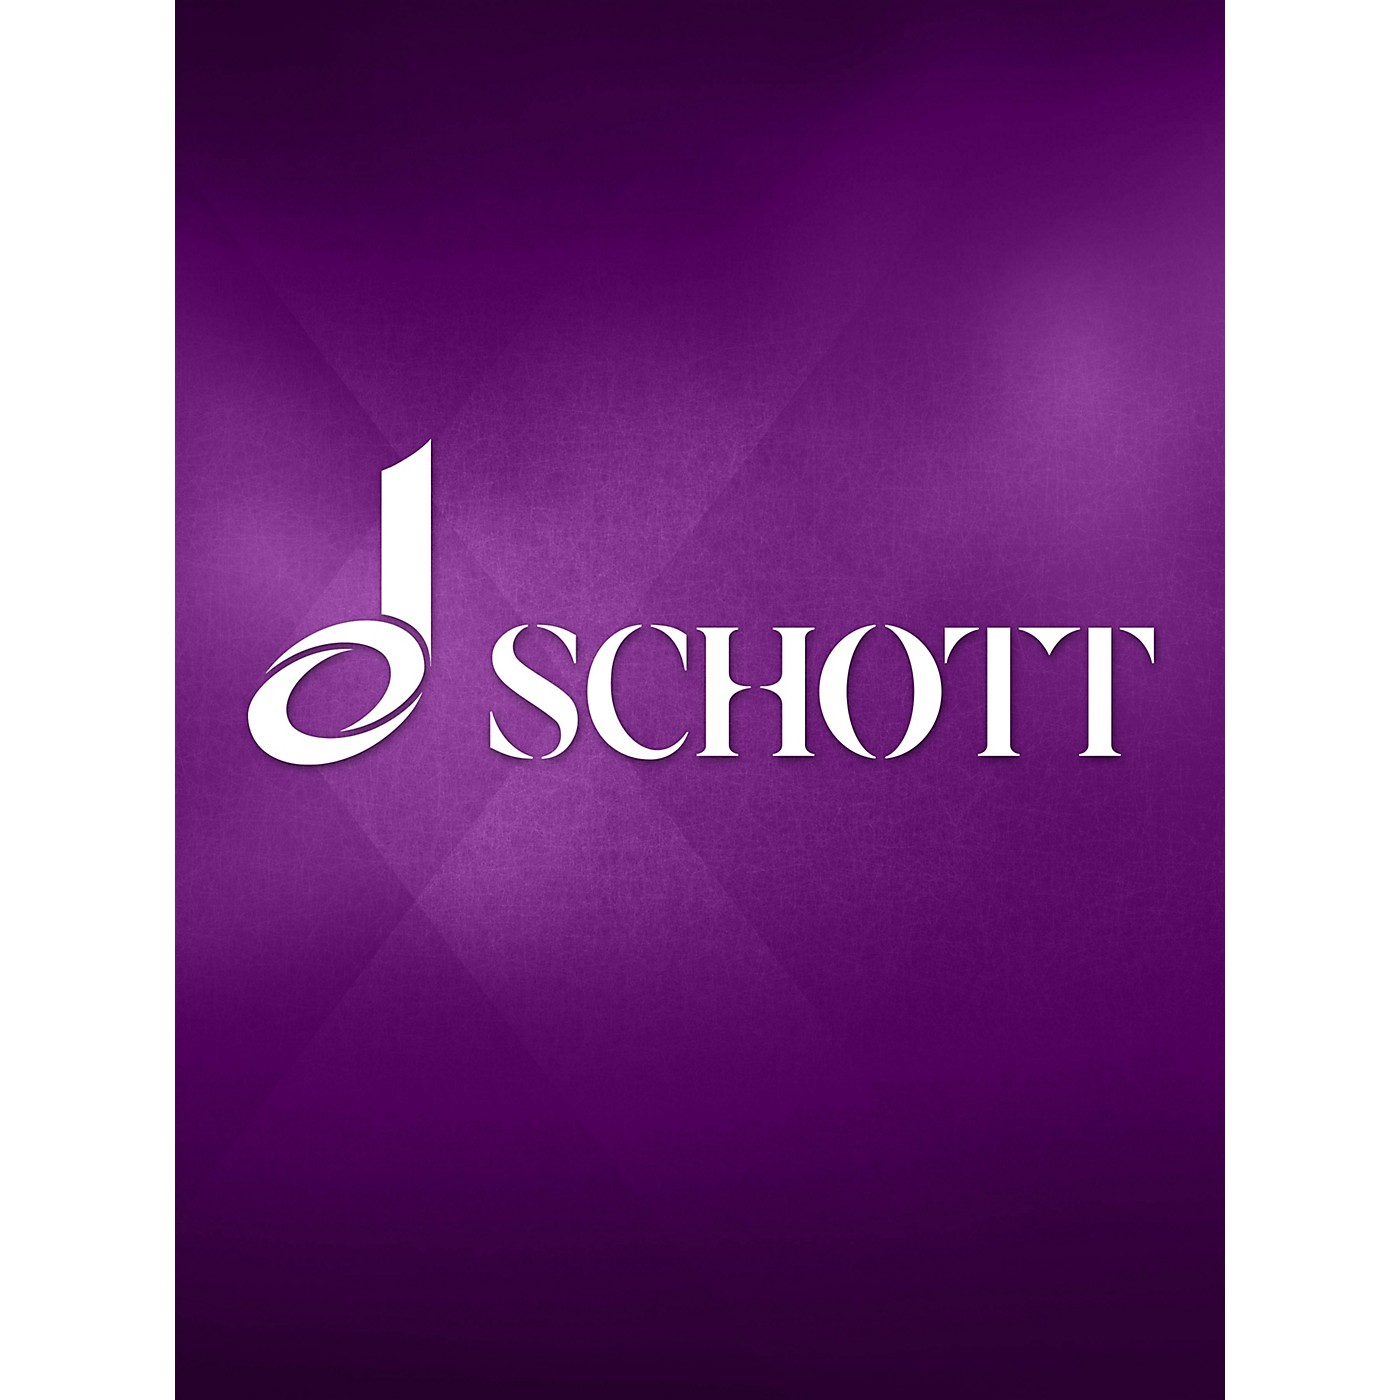 Schott Inno A Roma - Hymne Auf Rom: 6 Pieces (for Piano Trio with Voice SC/PTS) Ensemble Series Softcover thumbnail